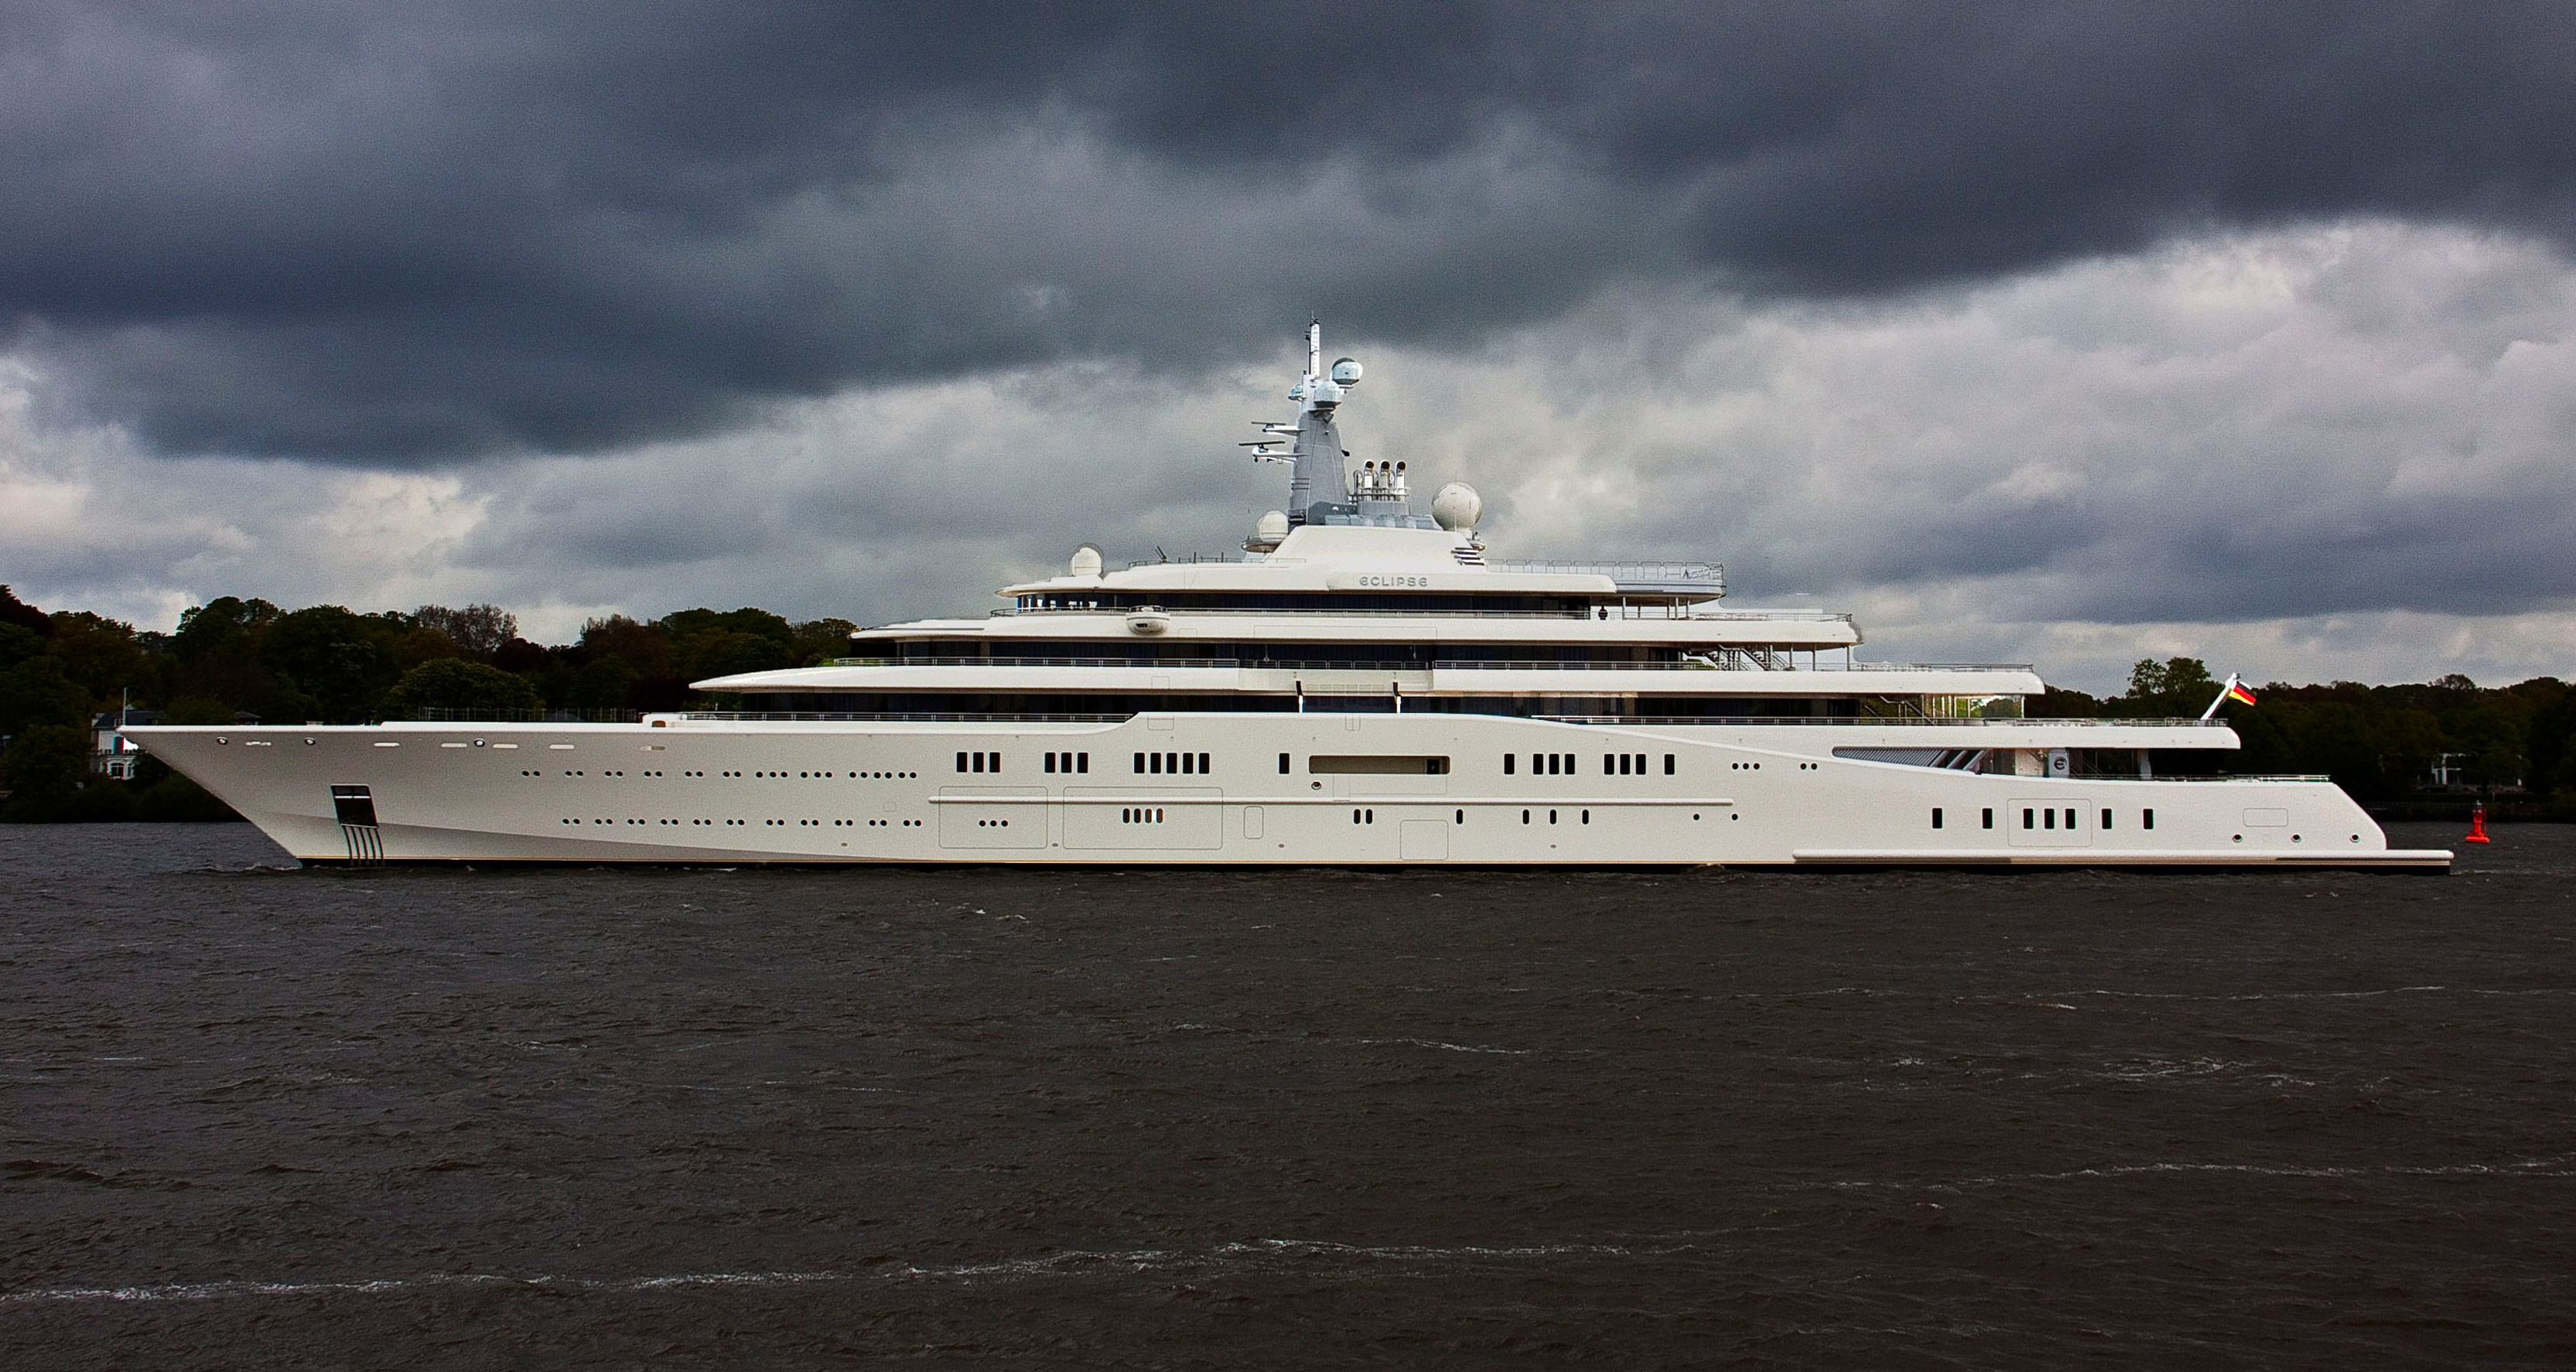 as part of the article photos of the largest superyacht eclipse